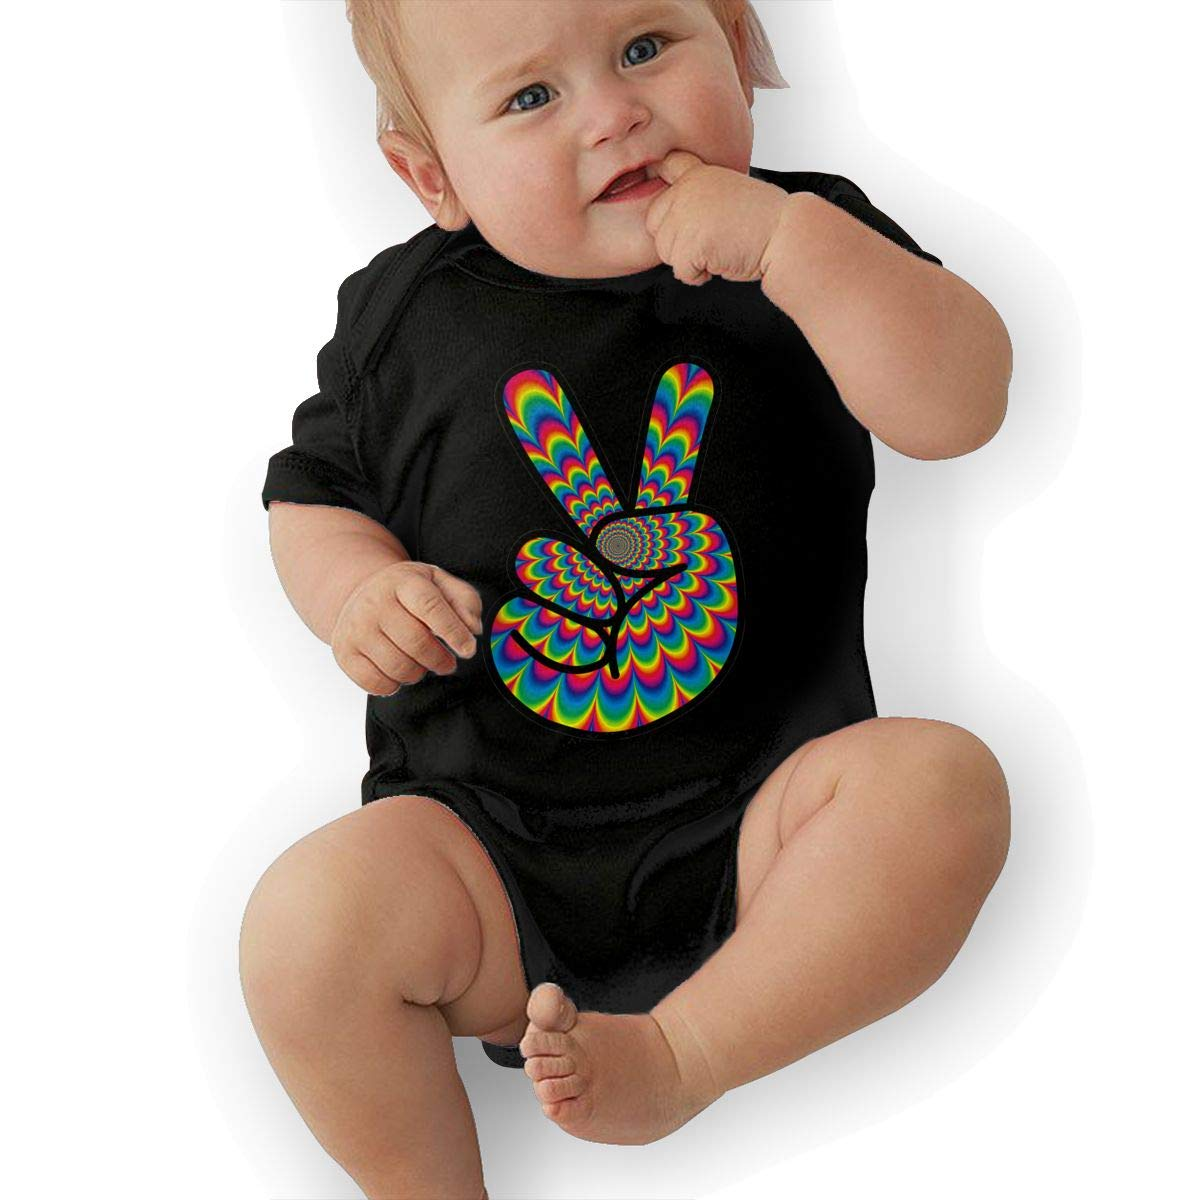 Cute Psychedelic Peace Hippie Playsuit U88oi-8 Short Sleeve Cotton Bodysuit for Baby Girls Boys